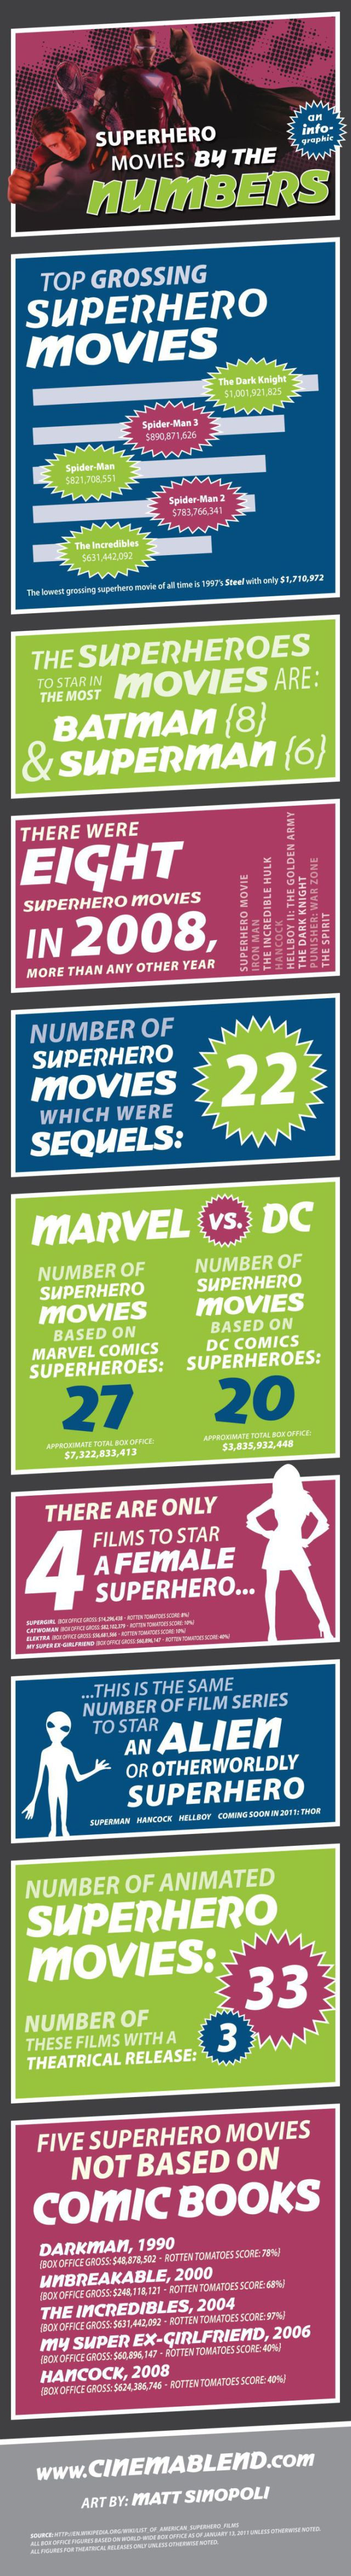 Superhero Movie Ratings